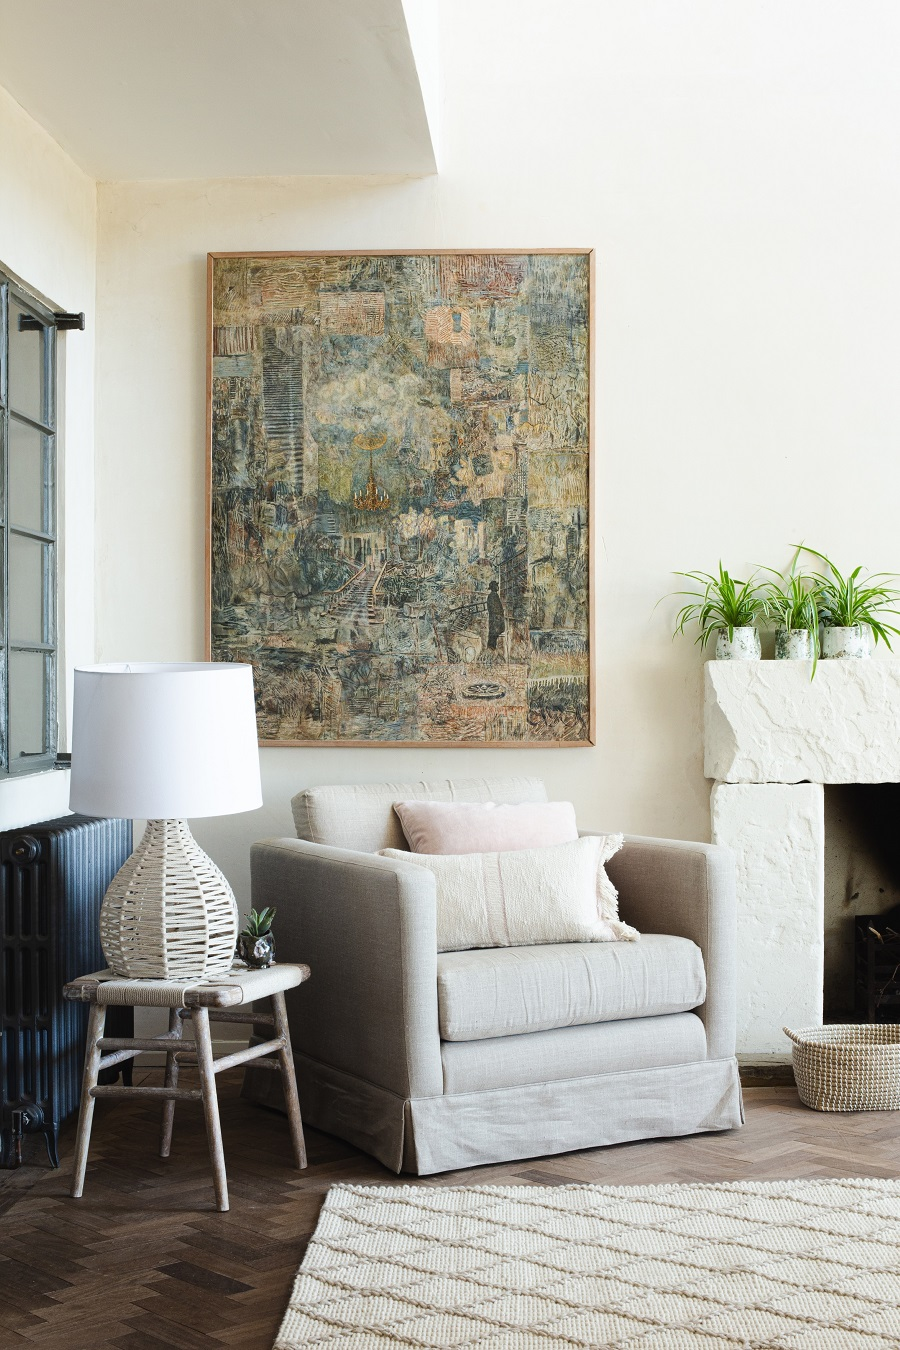 A Comfy Corner Filled With Texture and How to Get The Look